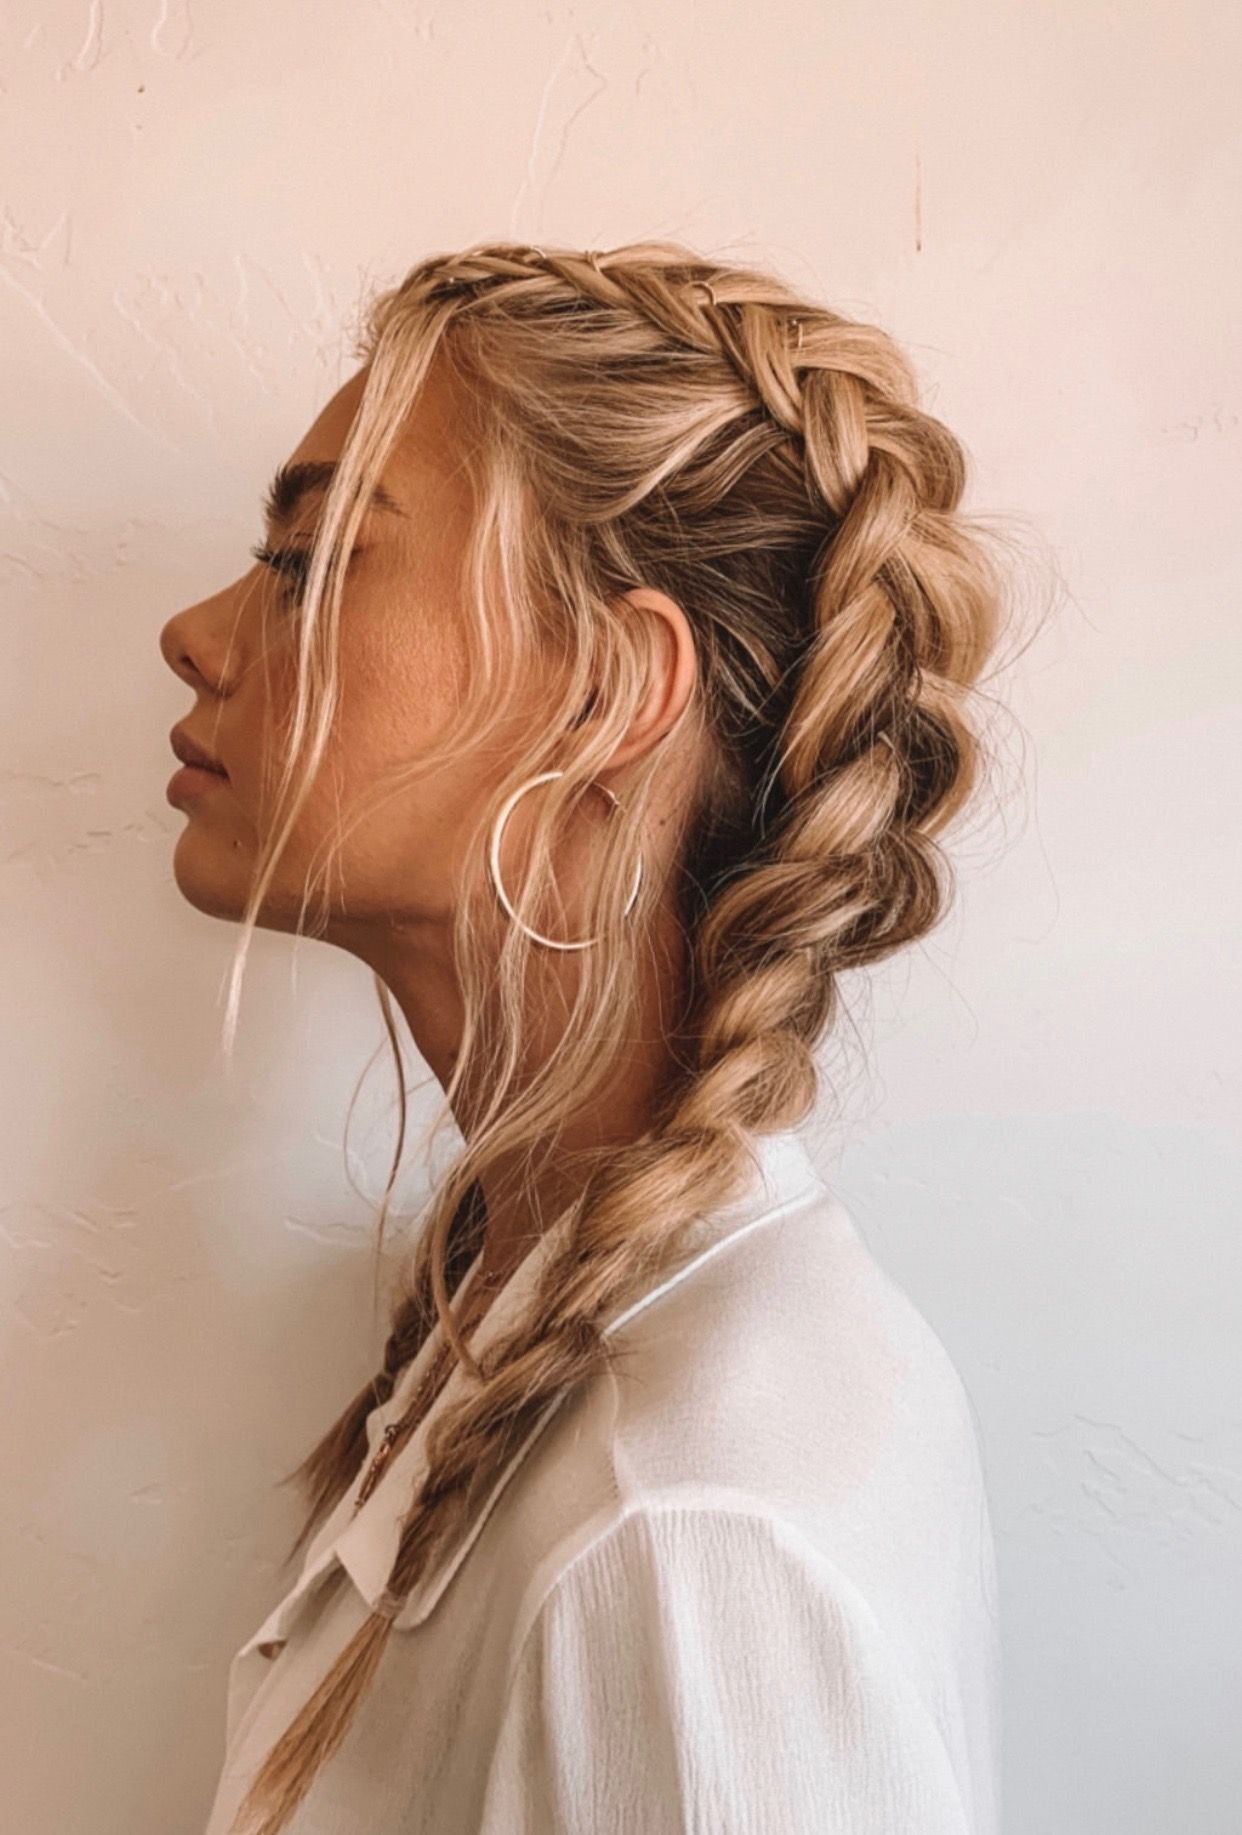 Pin by Shannon Sabelline on BEAUTY HAIR NAILS etc. in 2019